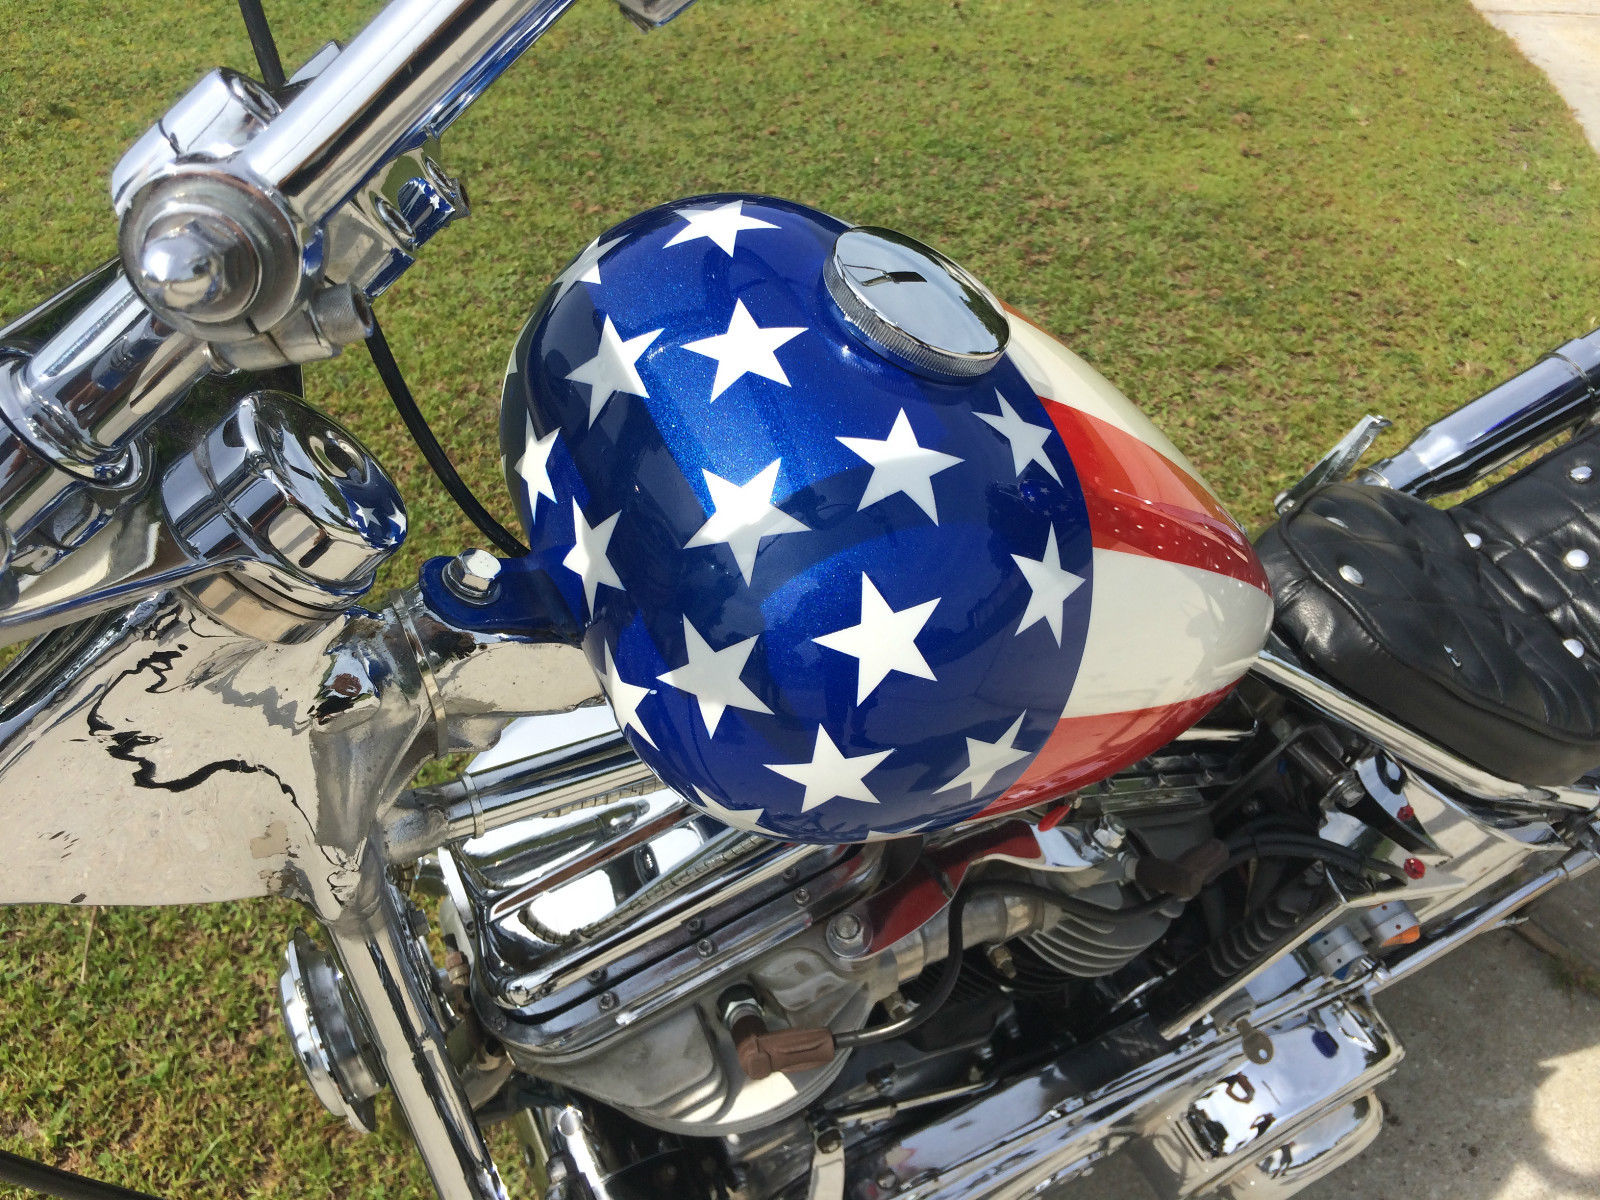 Harley-Davison Easy Rider Replica - 1956 - Red White and Blue, Captain America Paint.